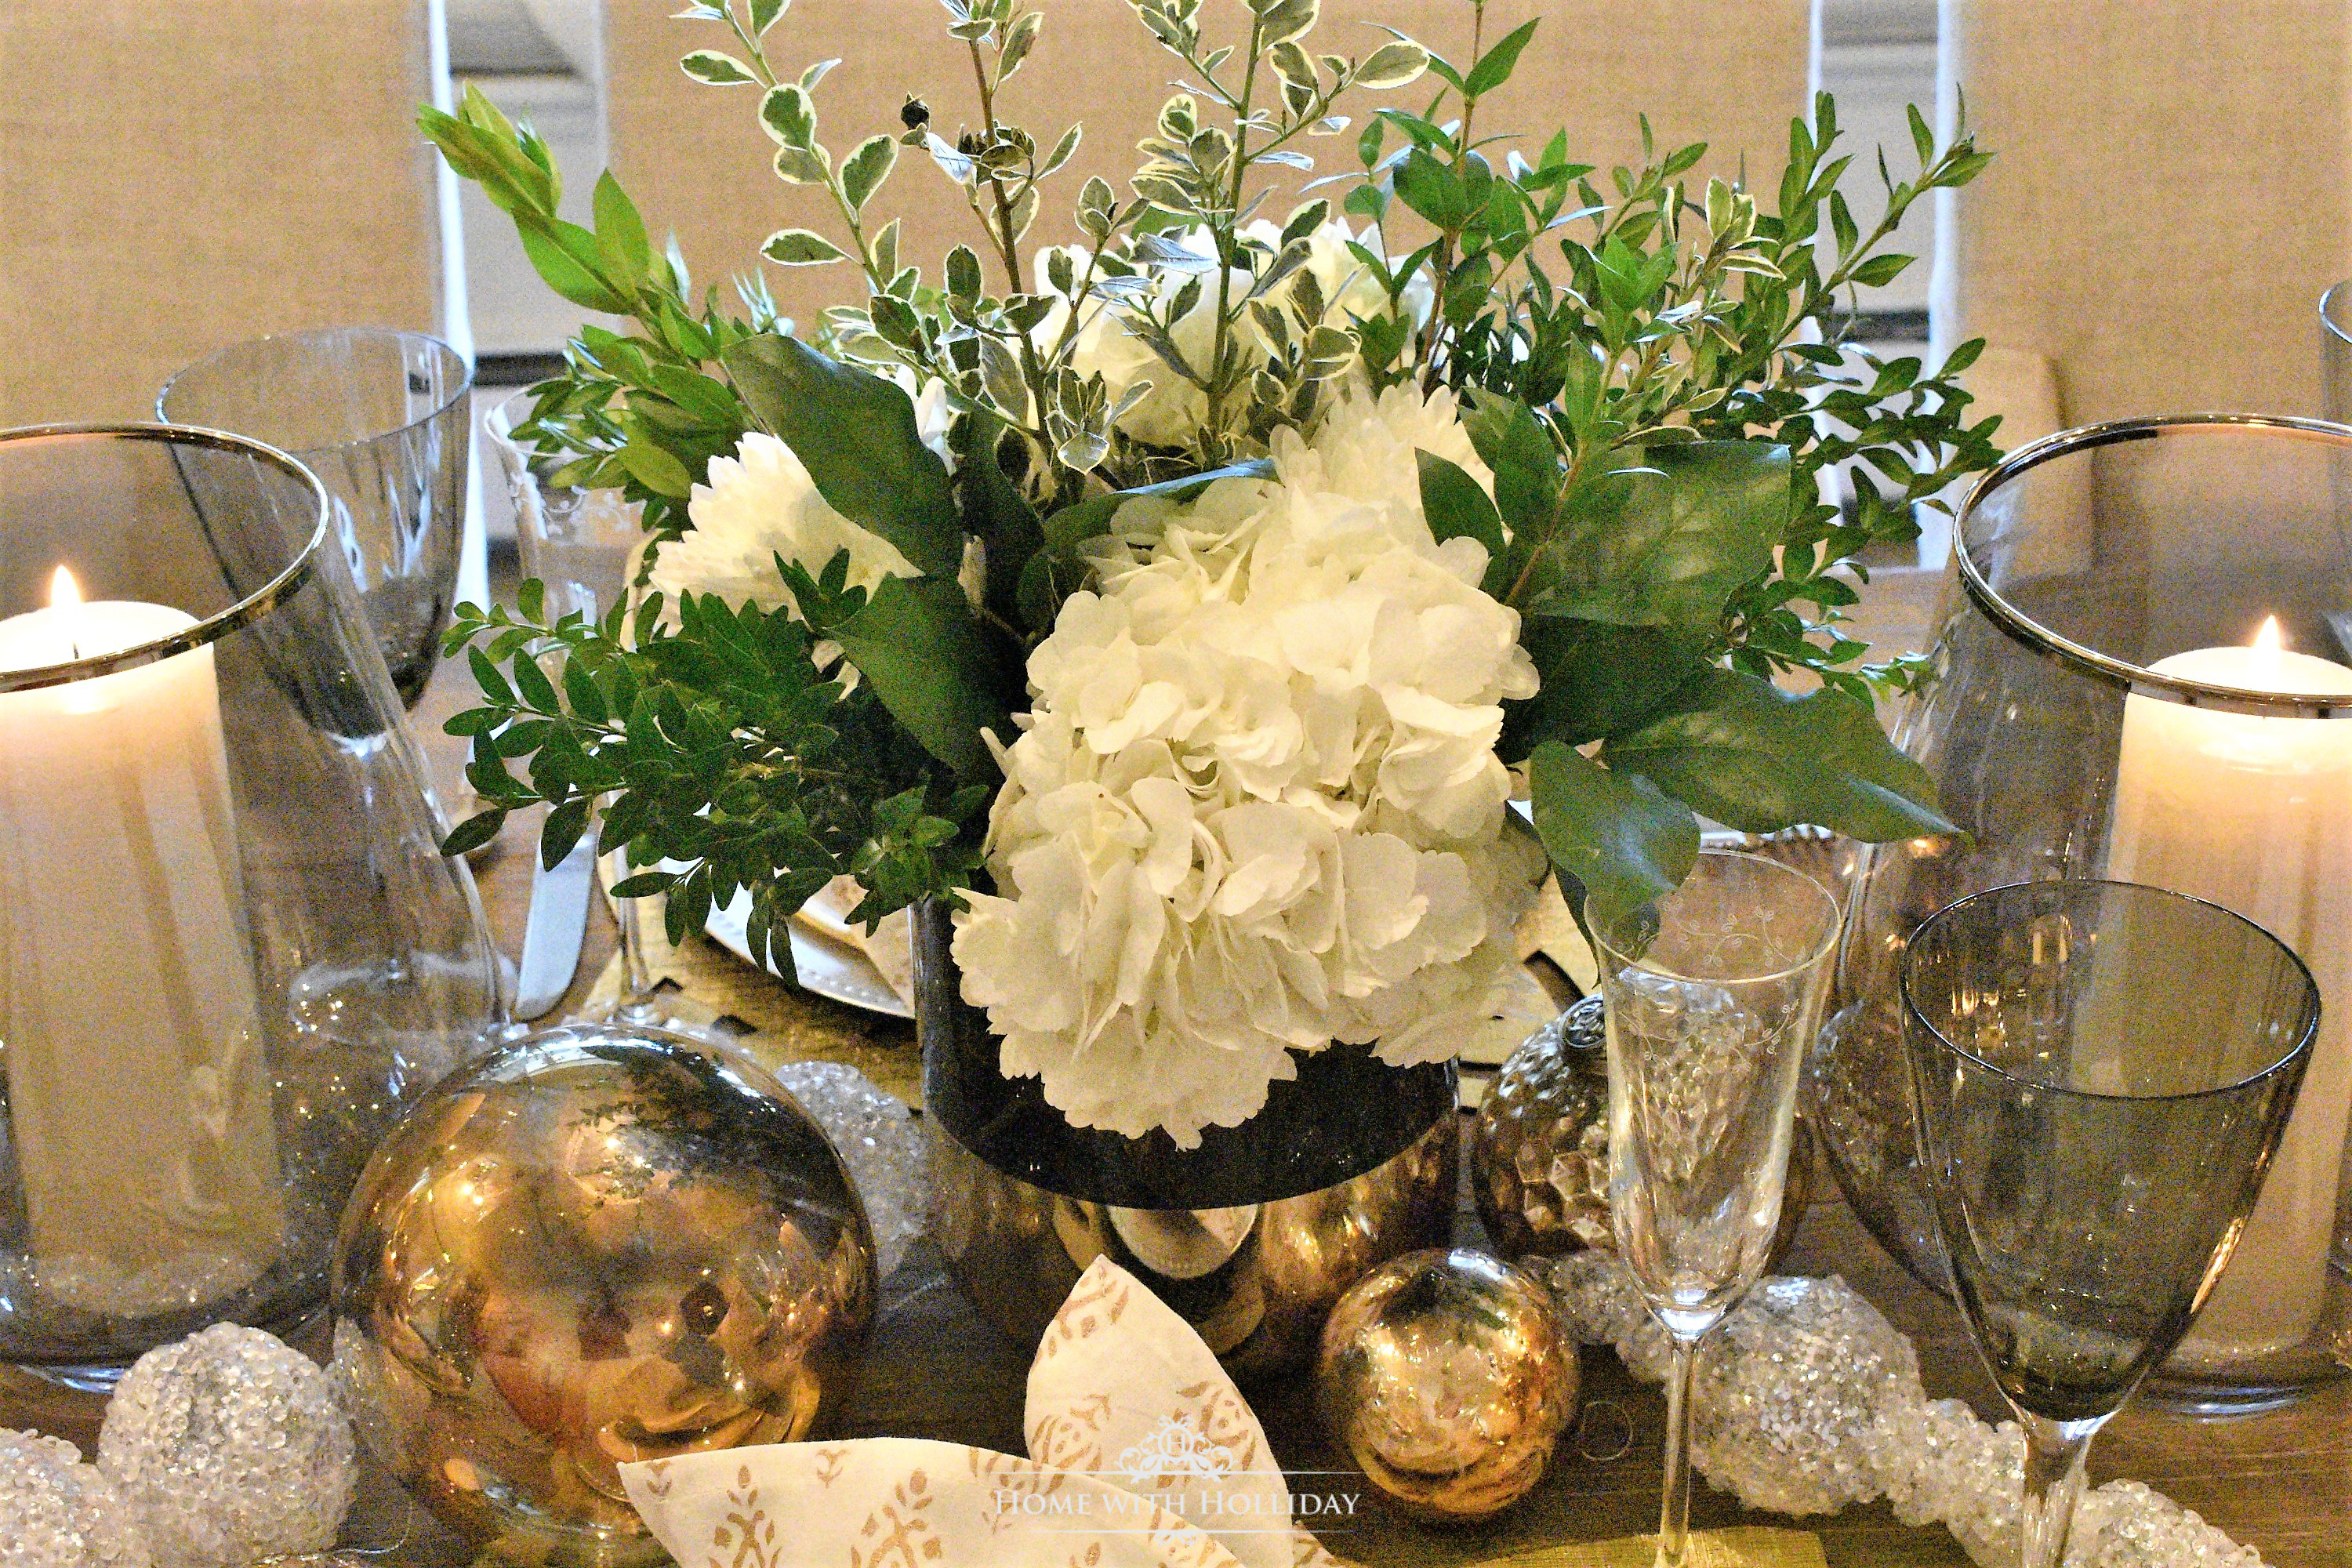 The Centerpiece for my Gold and Silver Table Setting for Christmas or New Year's Eve - Home with Holliday